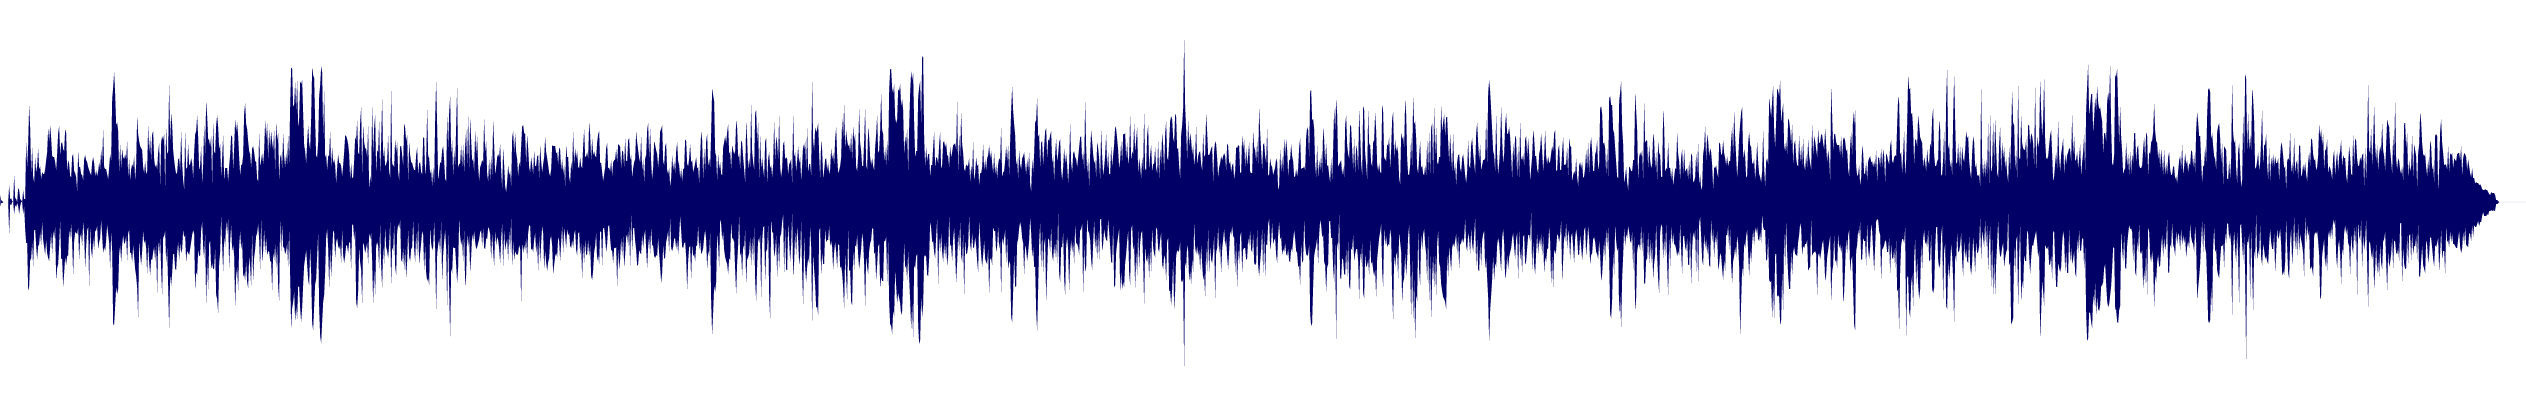 waveform of track #104113